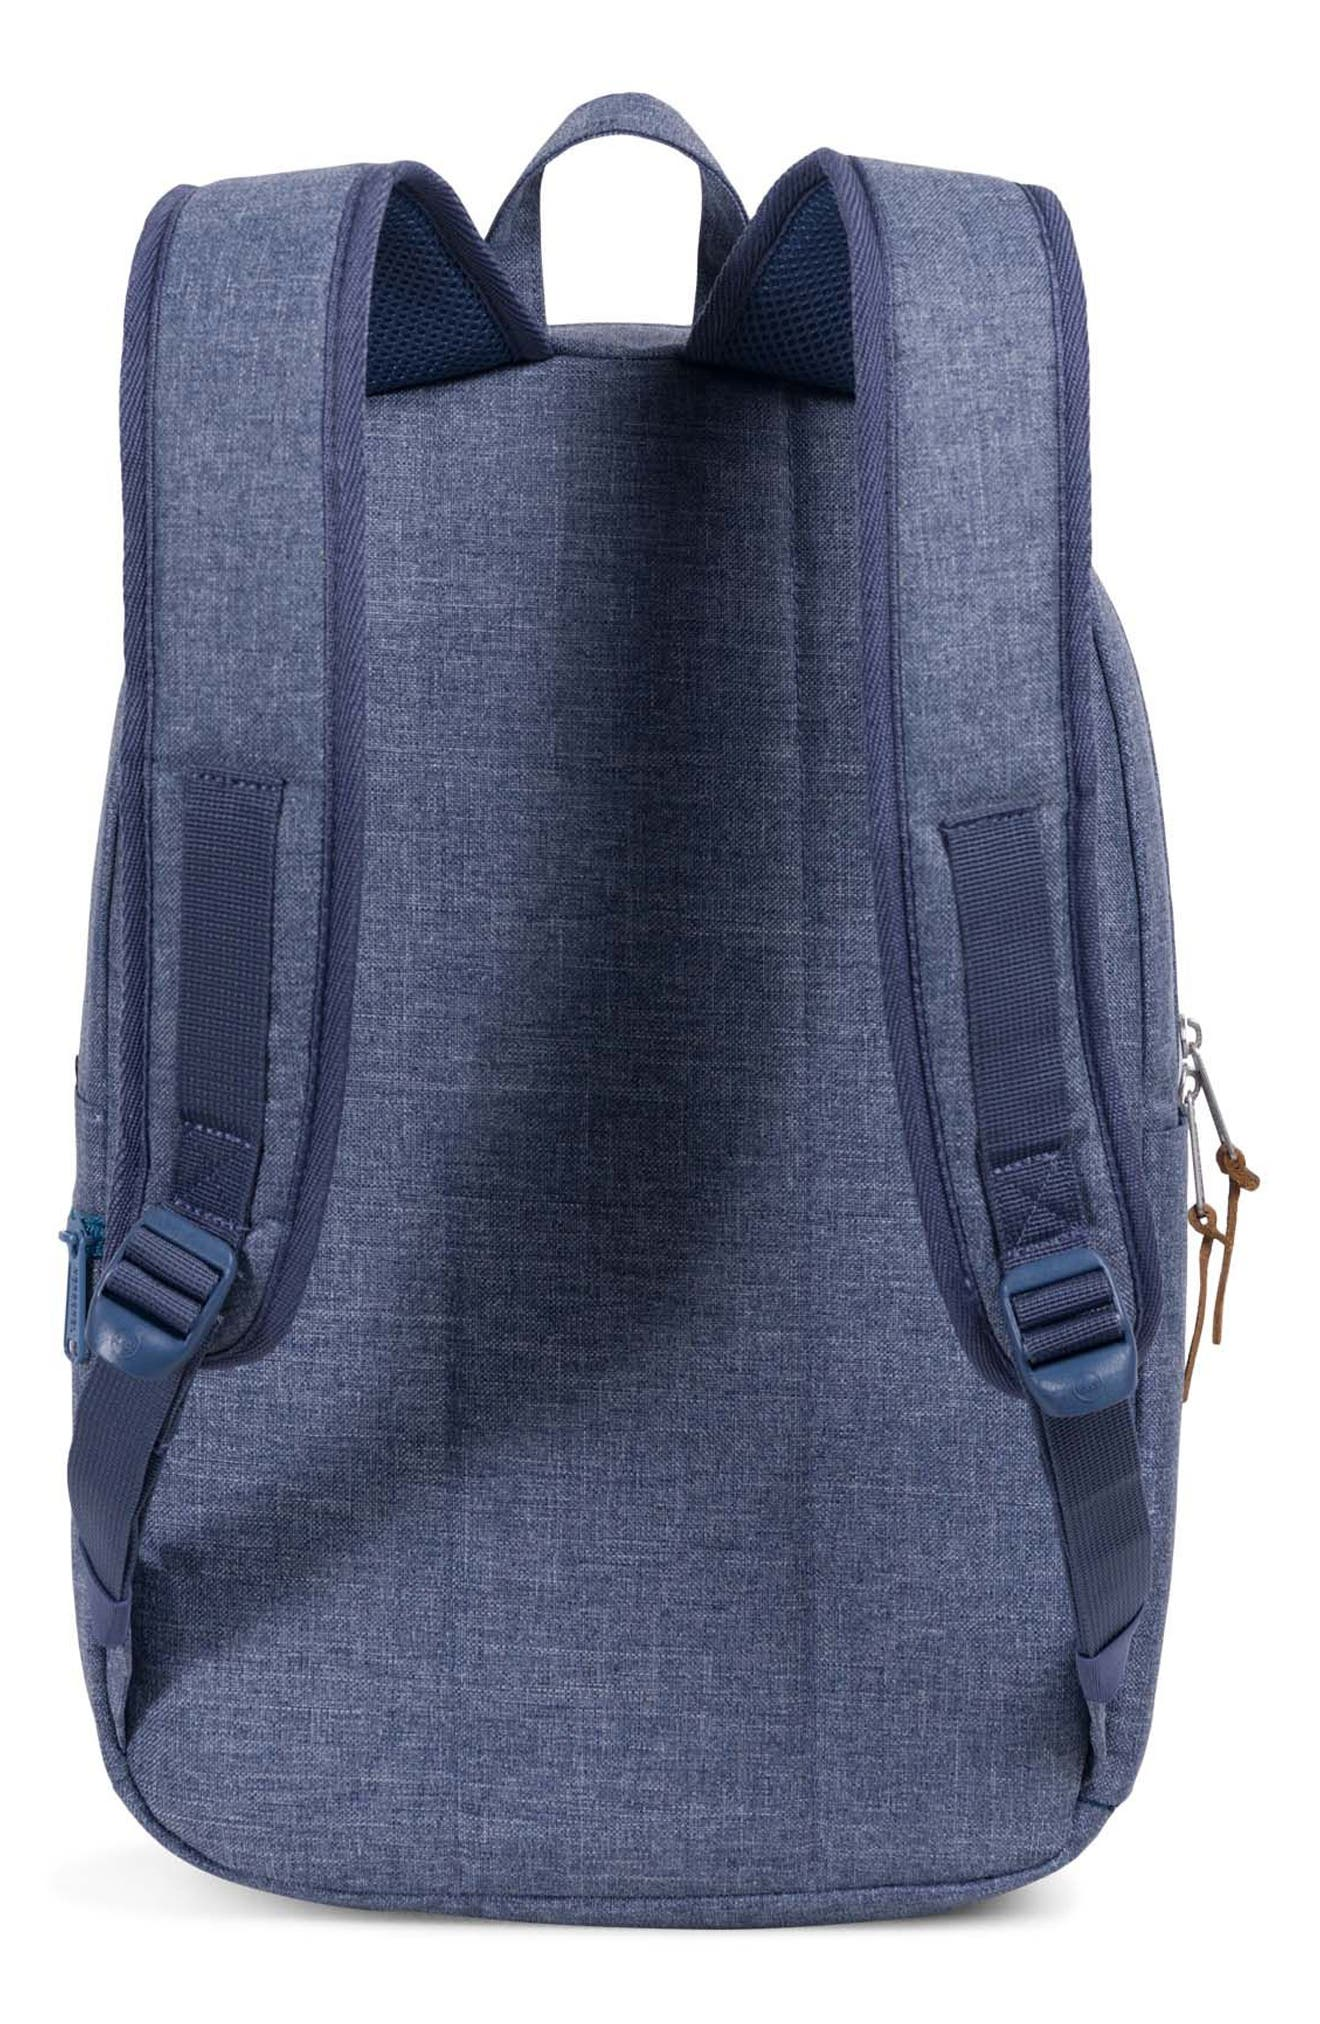 Harrison Backpack,                             Alternate thumbnail 2, color,                             Dark Chambray Crosshatch